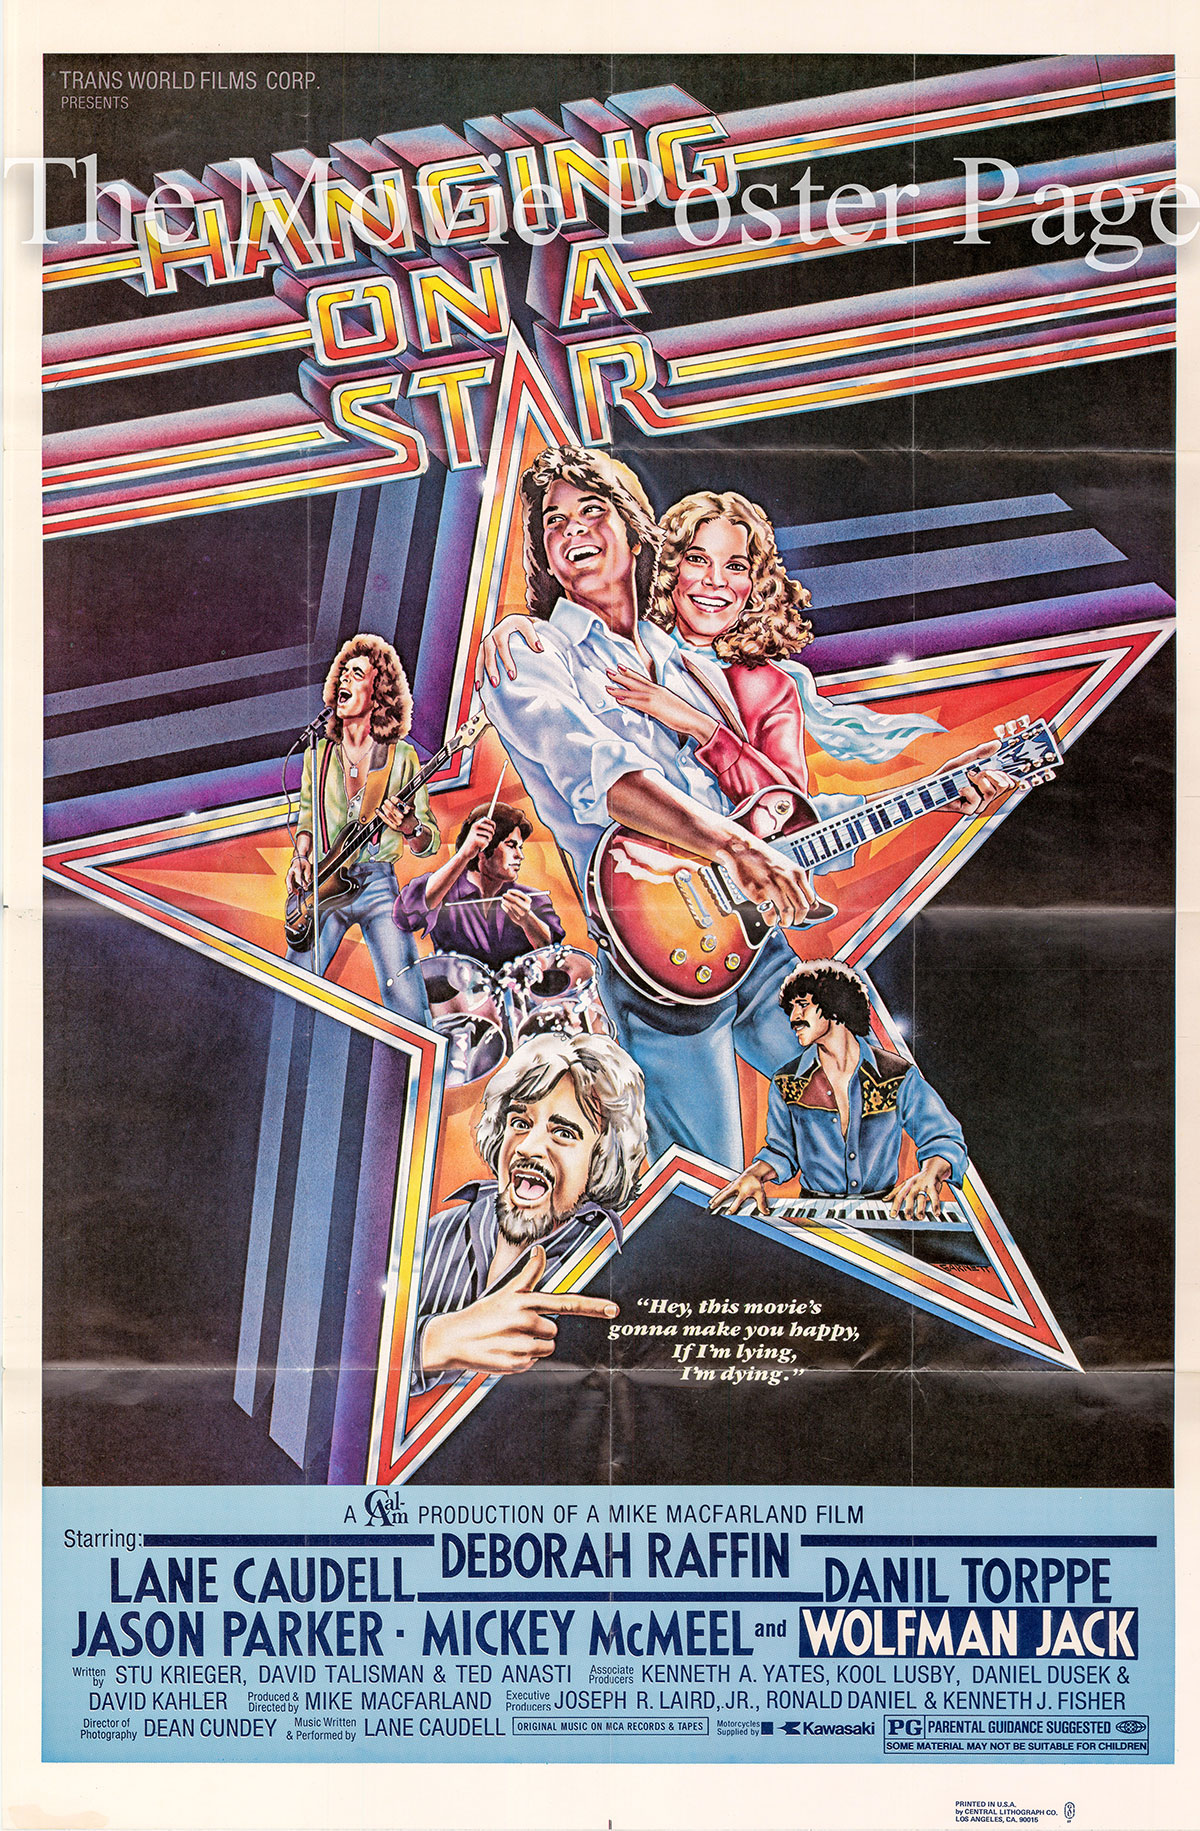 Pictured is a US one-sheet poster for the 1978 Mike MacFarland film Hanging on a Star starring Deborah Raffin as Katie Ross.